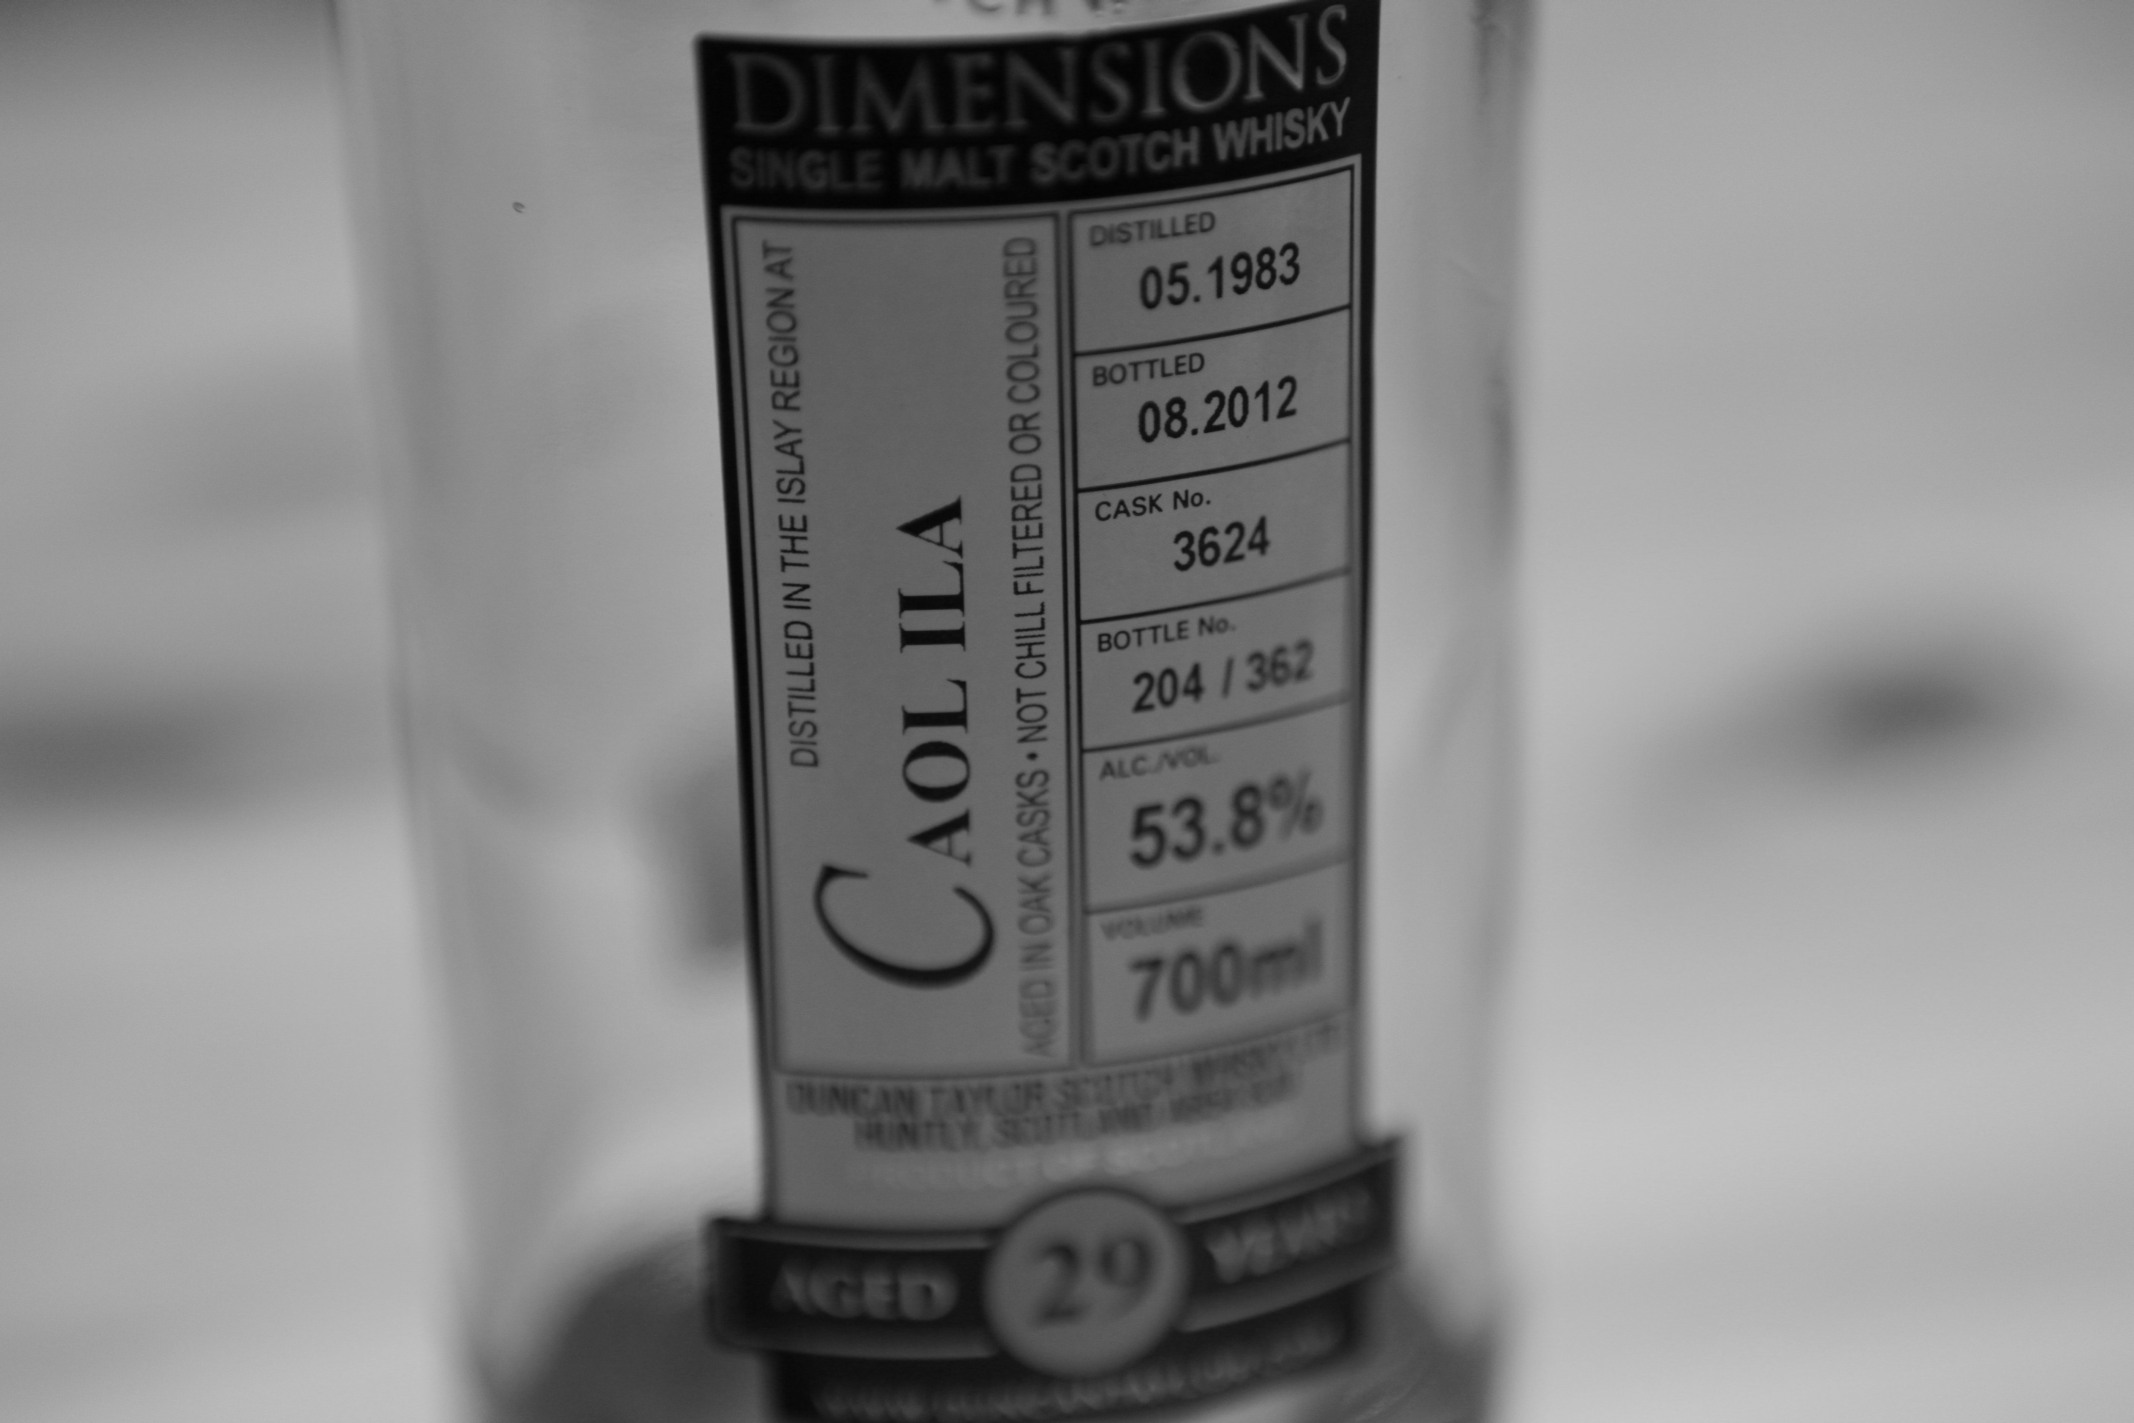 Duncan Taylor Caol Ila 29yr 1983 Dimensions Whisky Review